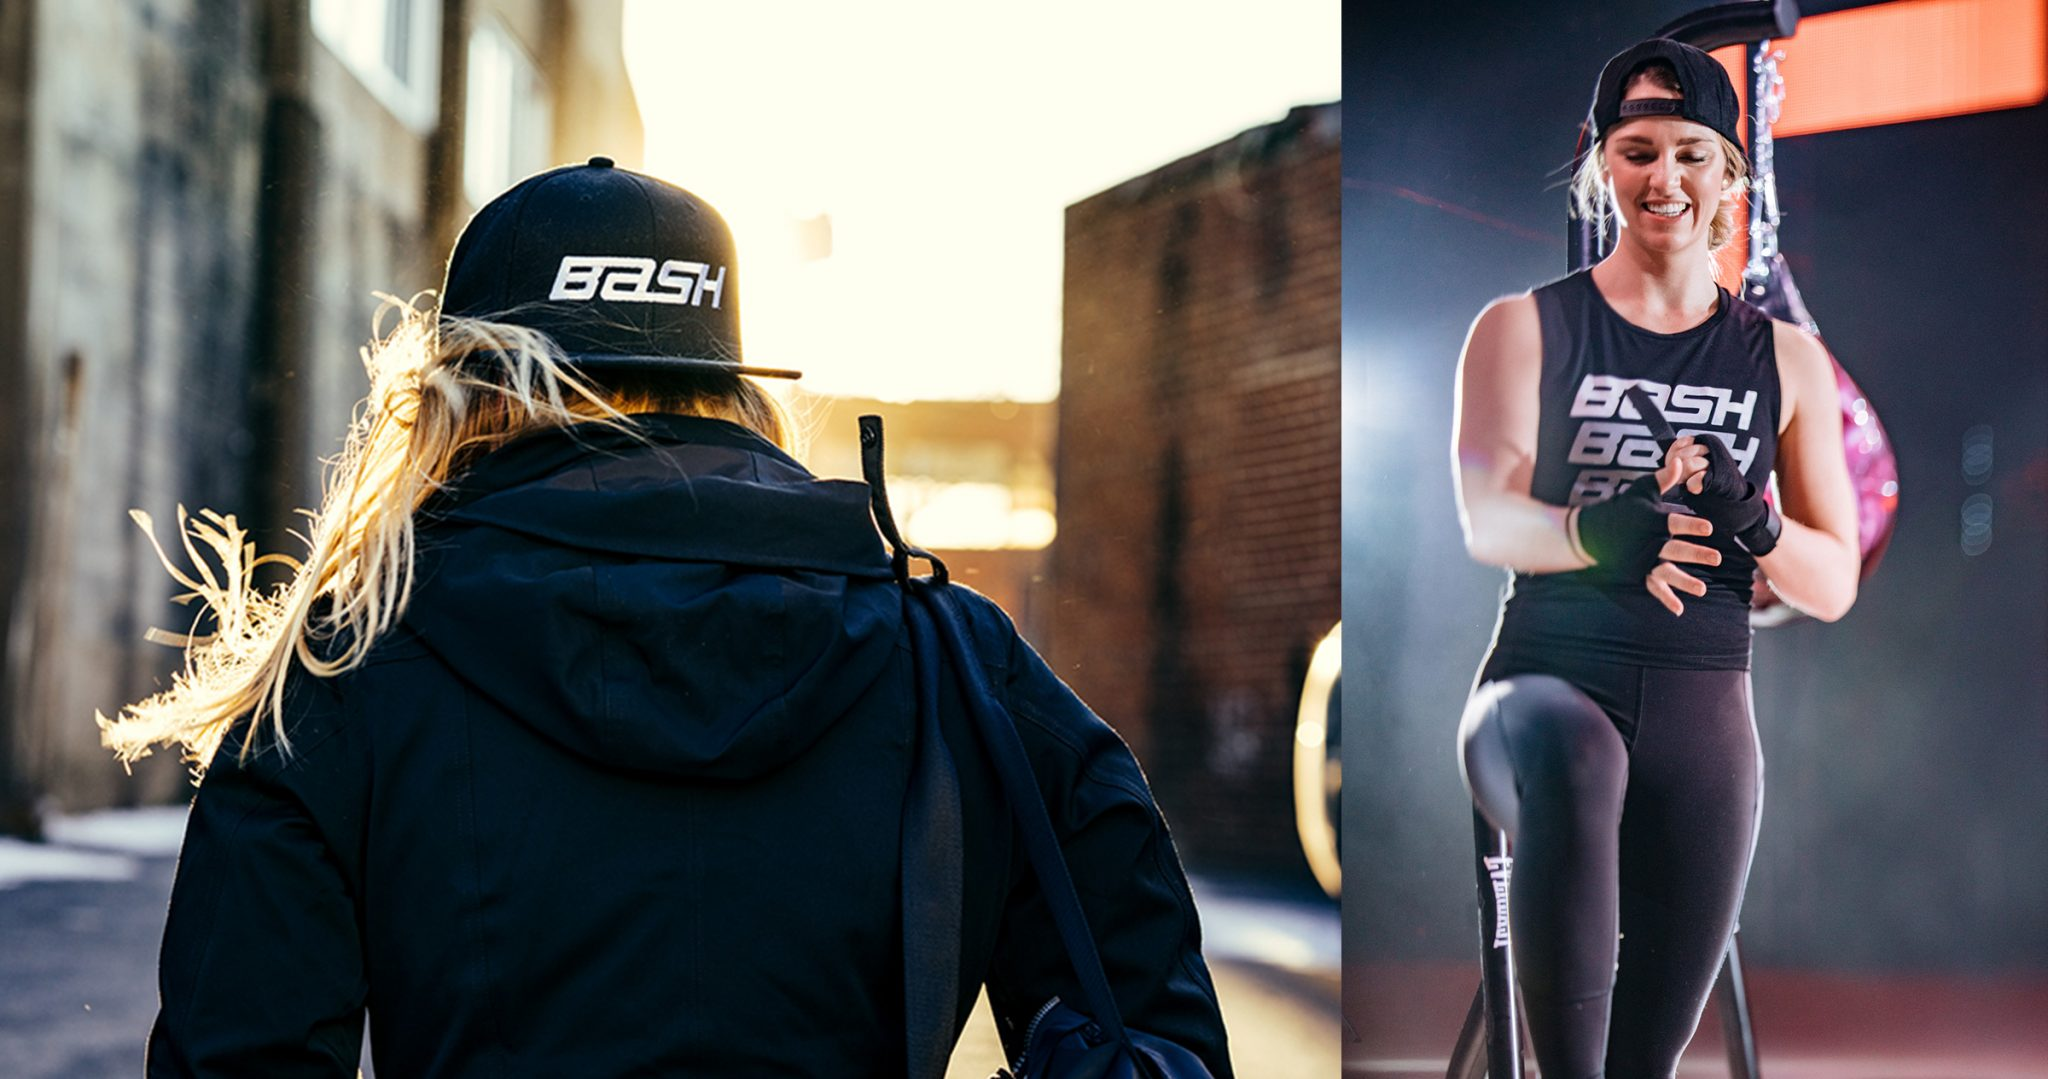 2 images of blonde woman wearing BASH boxing apparel